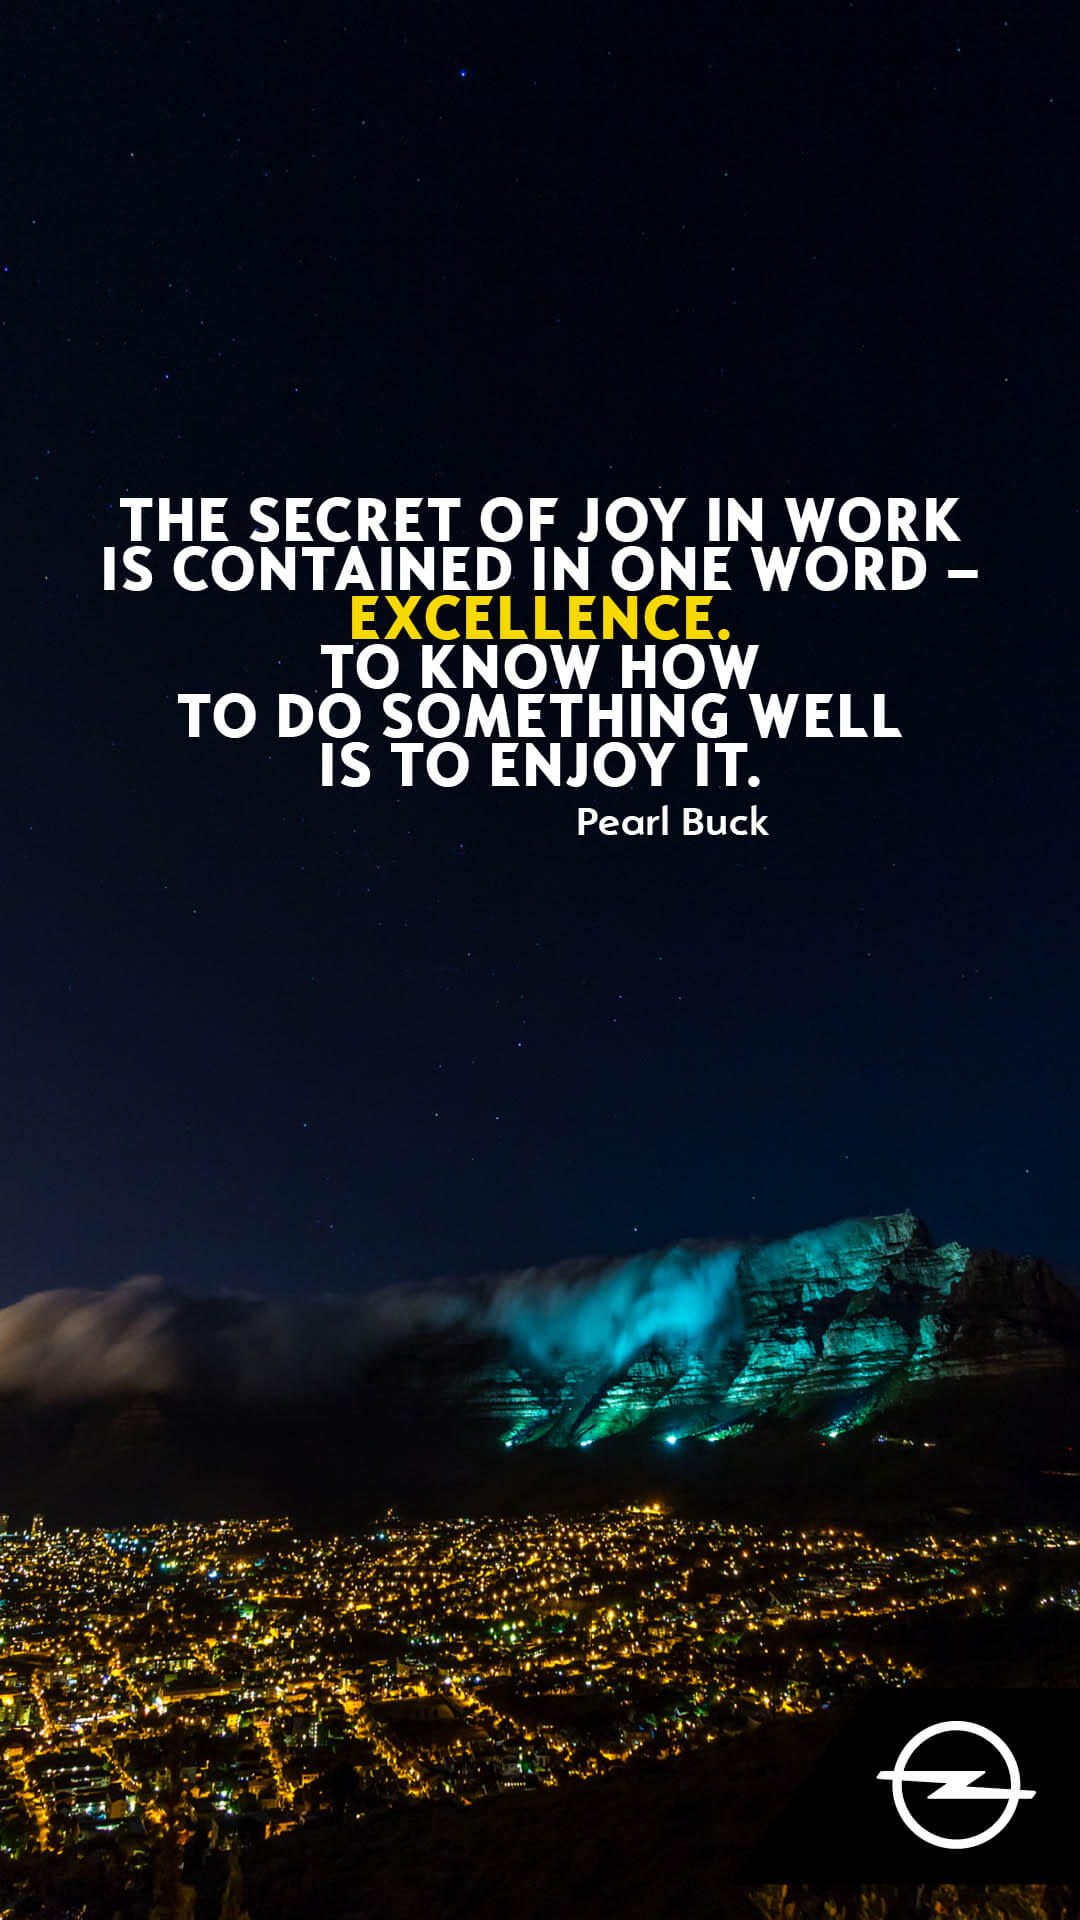 The secret of joy in work is contained in one word - excellence. To know how to do something well is to enjoy it.